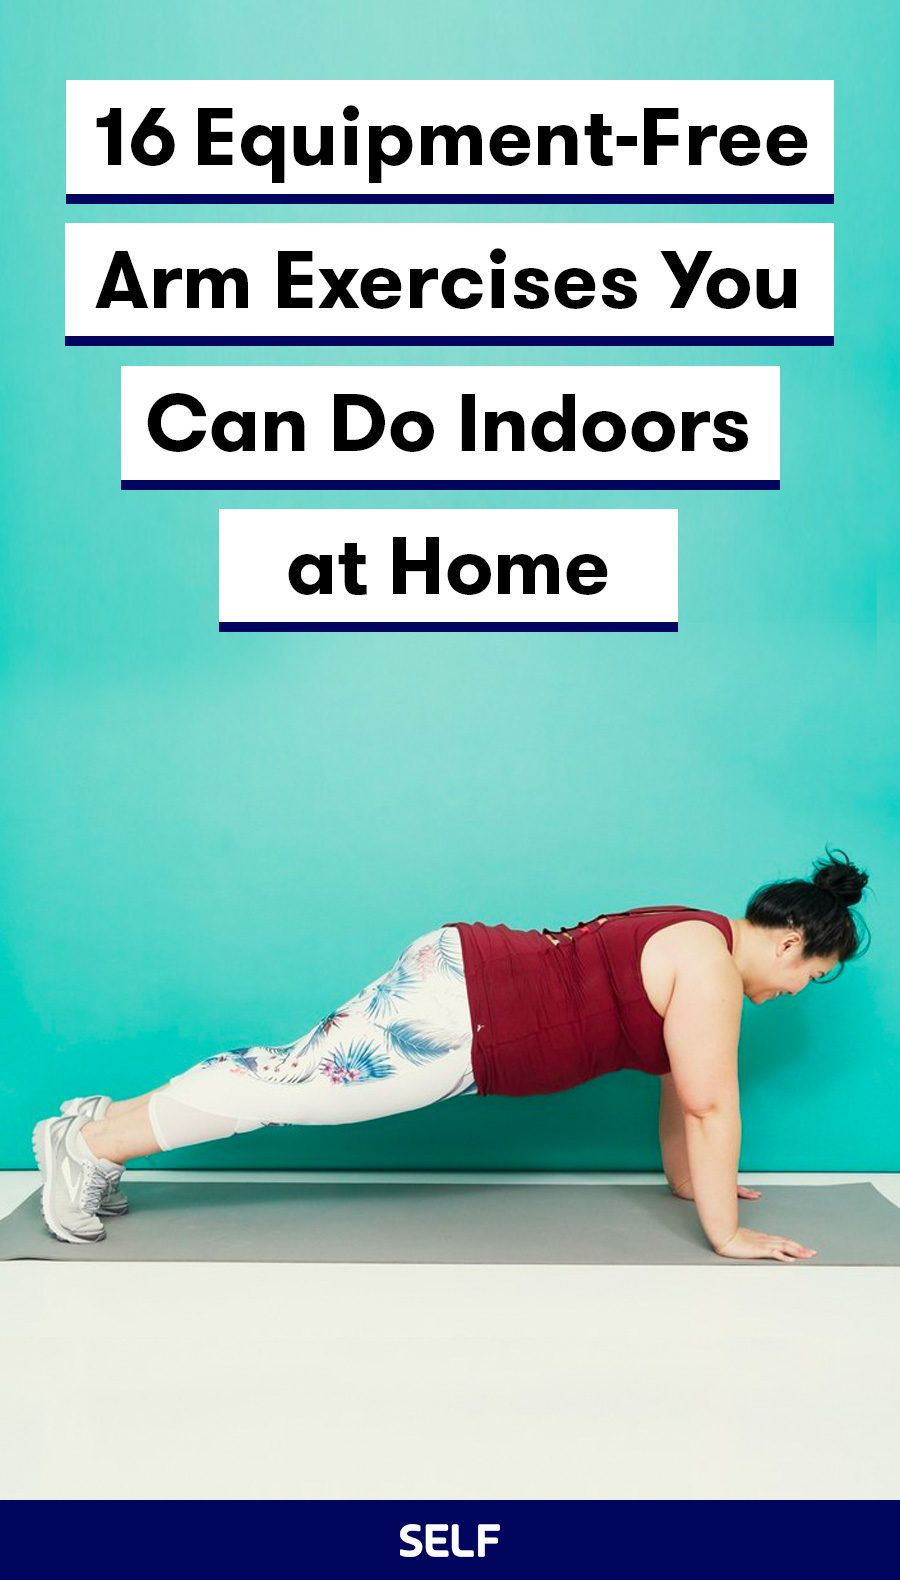 20 Arm Exercises Without Weights You Can Do at Home